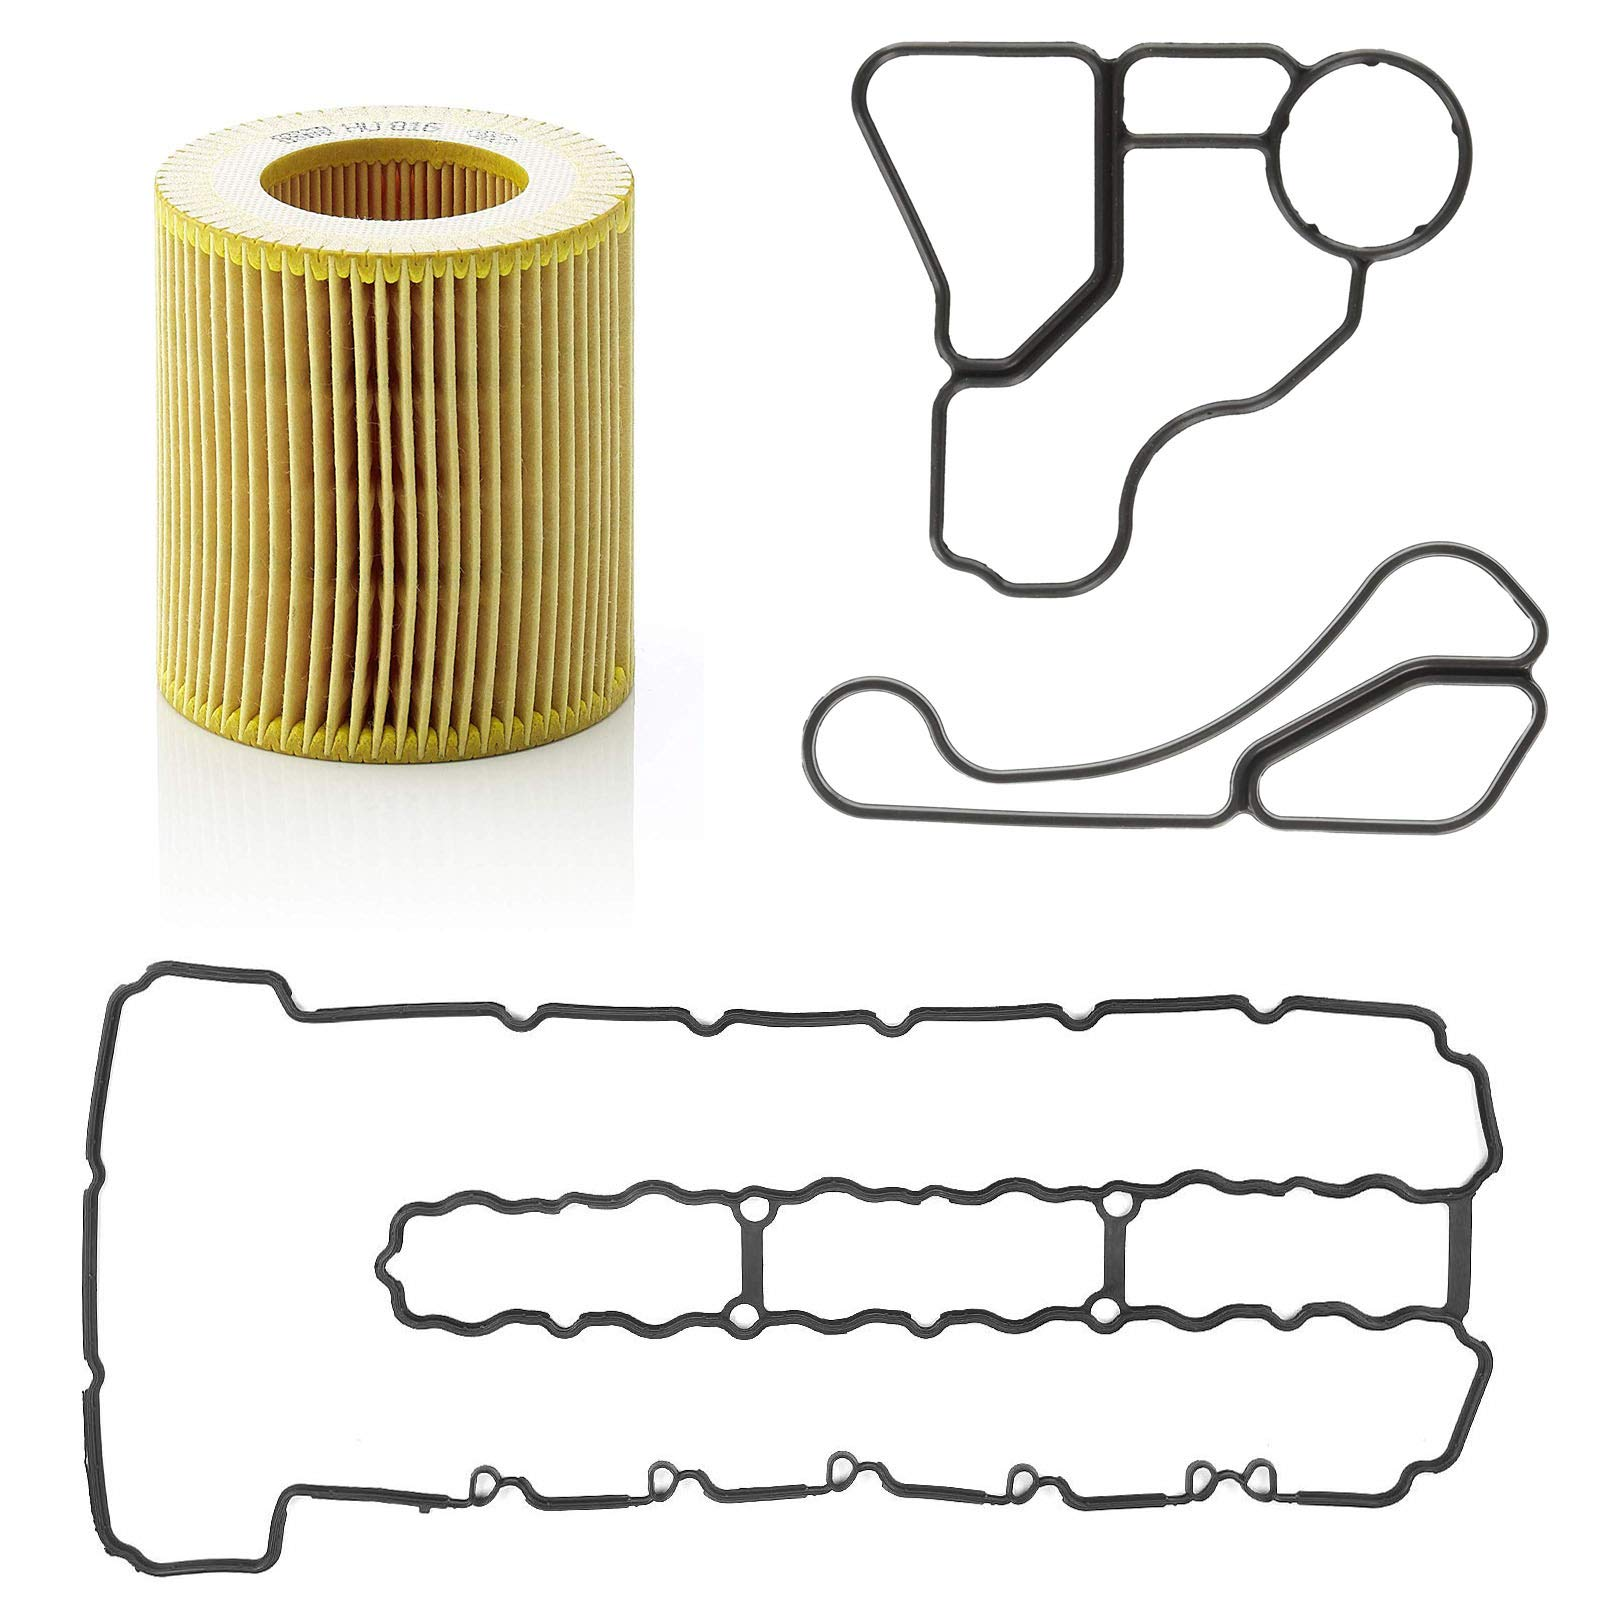 """M12 1//2/"""" Metal Rubber Oil Drain Plug Gasket Aftermarket Replacement fits 097-021 65274 GM 14079550 Buy Auto Supply # BAS03500 24571185 24.7mm O.D // 11.5mm I.D 25 Count"""